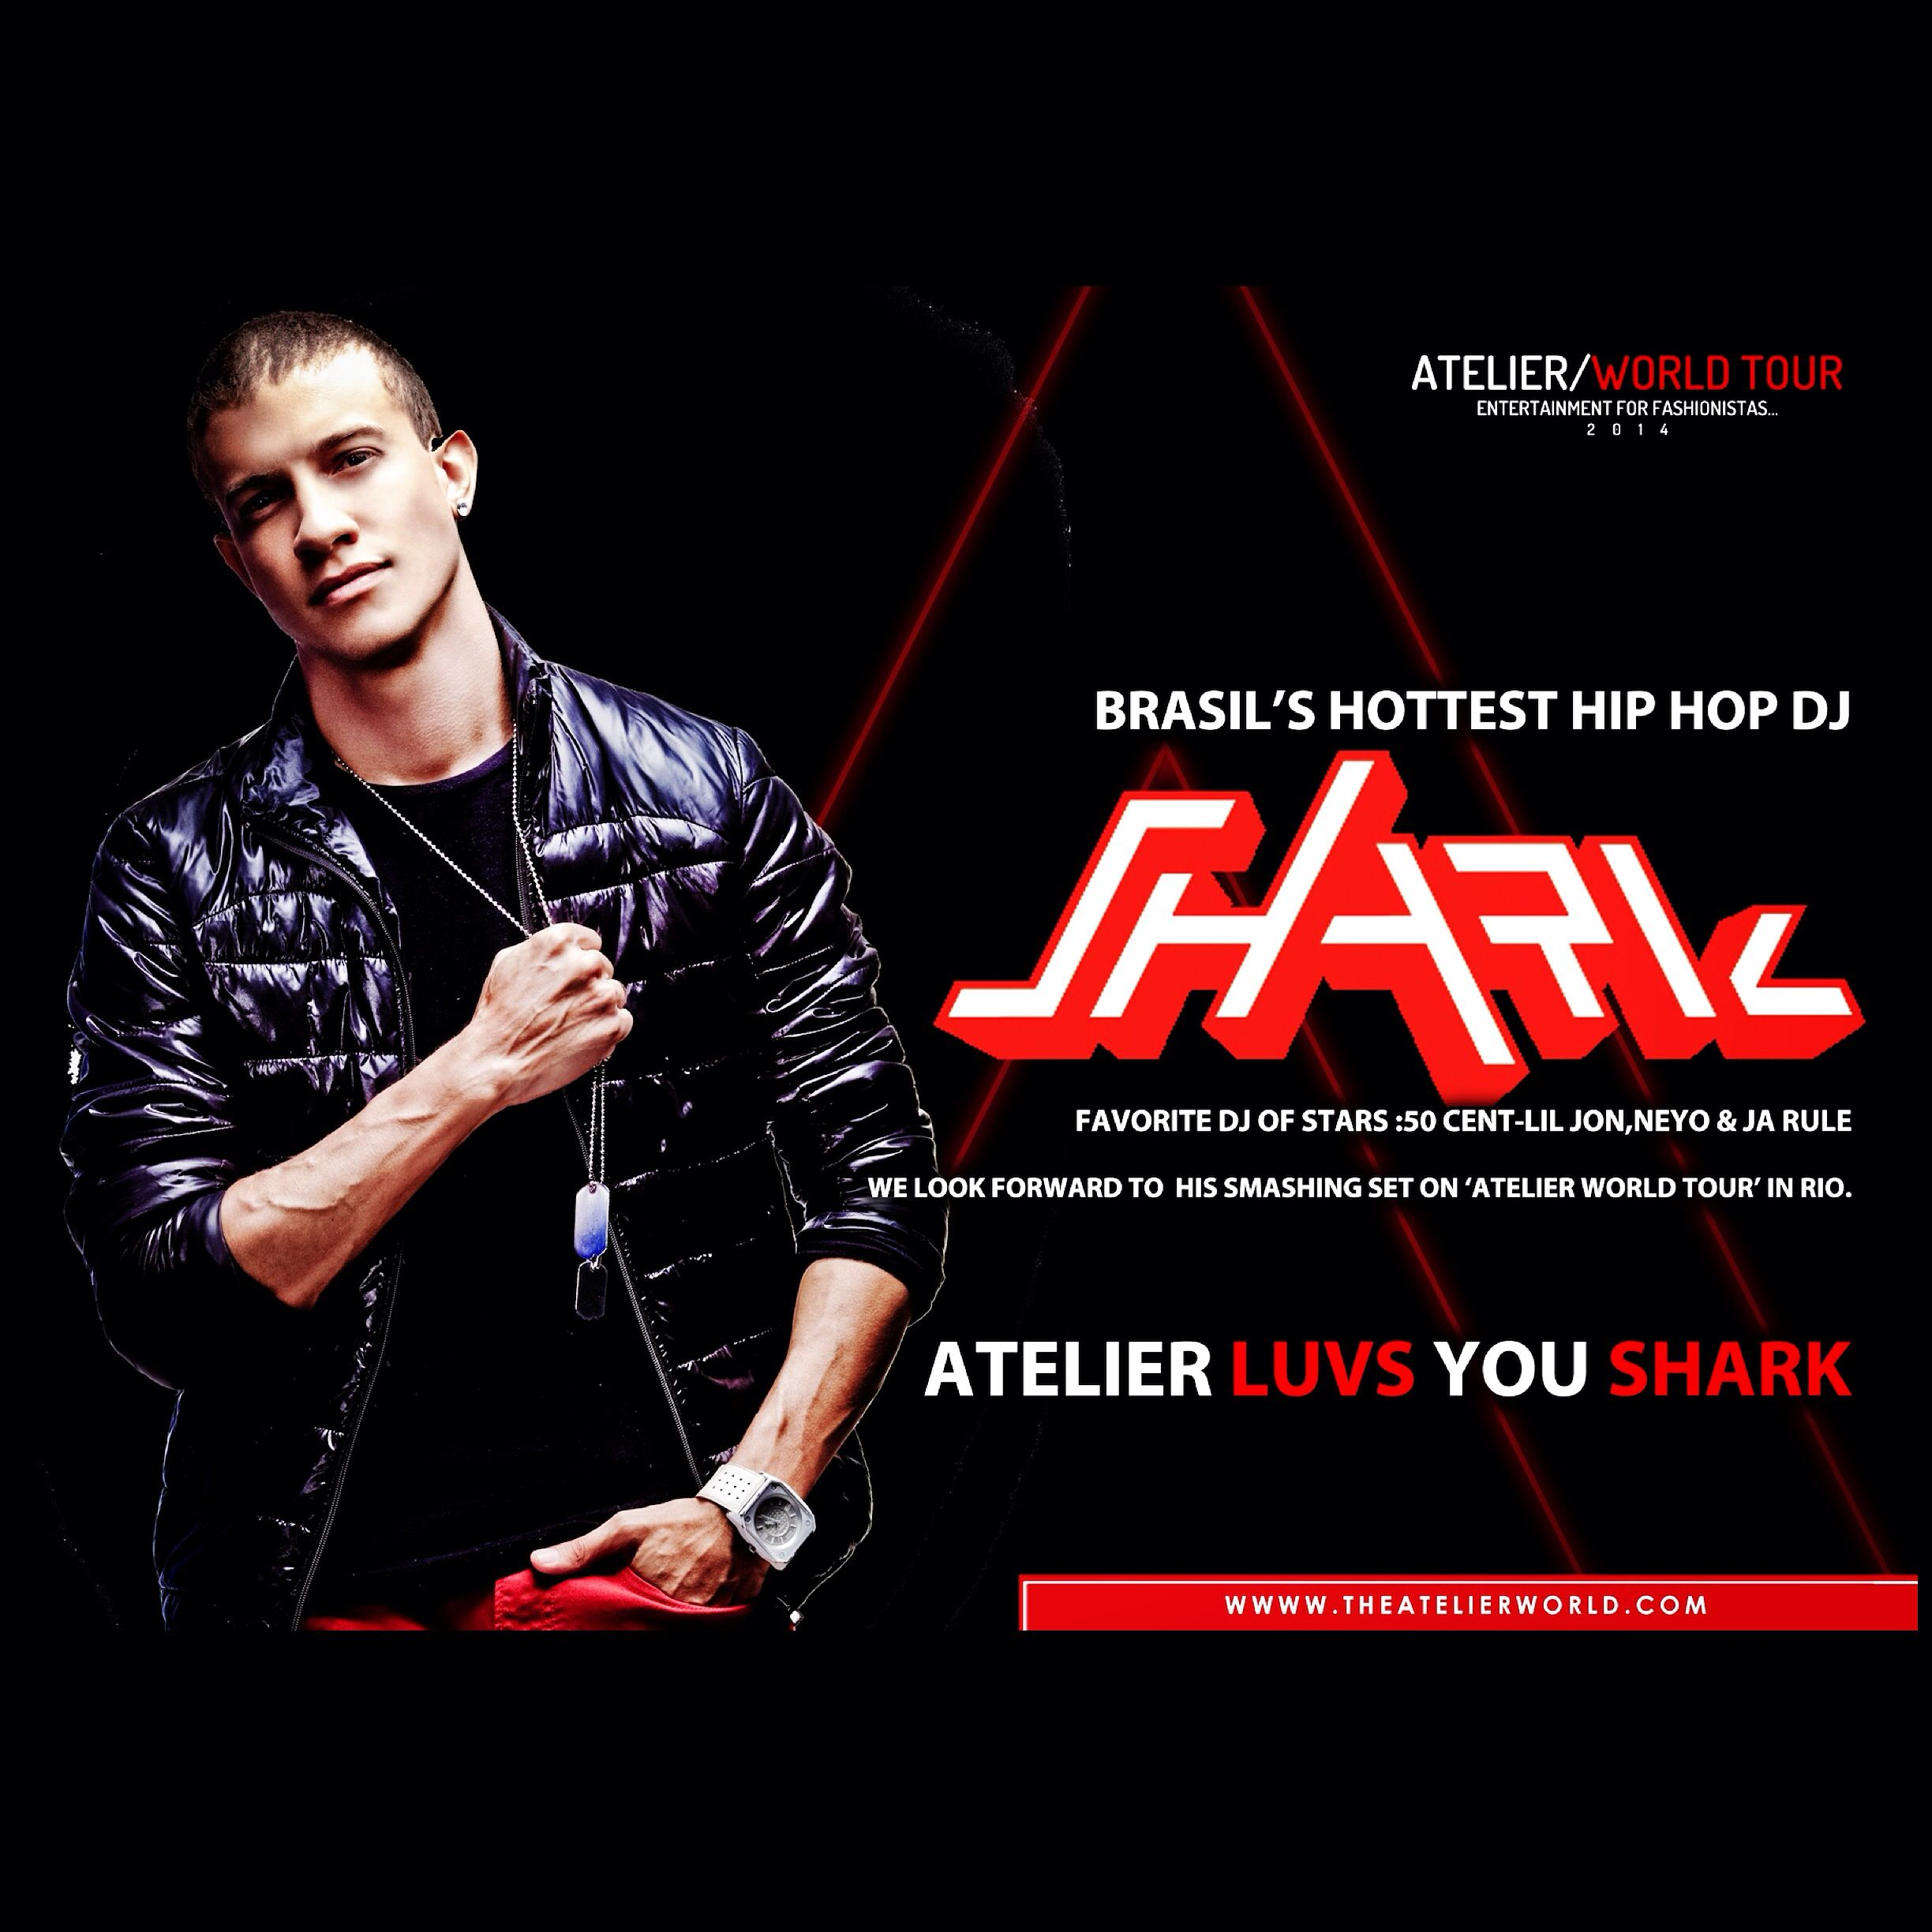 DJ #SHARK @DJSHARKBRASIL Live at the THE #Atelier/WORLDTOUR #PARTY#RIODEJANEIRO #RIODEJANEIROPARTY JULY 11th #URCA CIRCULO MILITAR DA  PRAIA VERMELHA/A FESTA MAIS EXCLUSIVA DE #DUBAI / CHEGA AO RIO /trazendo uma experienca unica em Sua our mundial COMPRE NO:WWW.TIXBOX.COM /WWW.INGRESSOCERTO.COM  #PARTY #fun #music #dance #rioparty #followus #tagsforlikes #instadaily #instaparty #instagood #worldcup2014 #worldcupbrazil2014 #fifa #fifa2014 #brasil #brasilgirls #brazilian